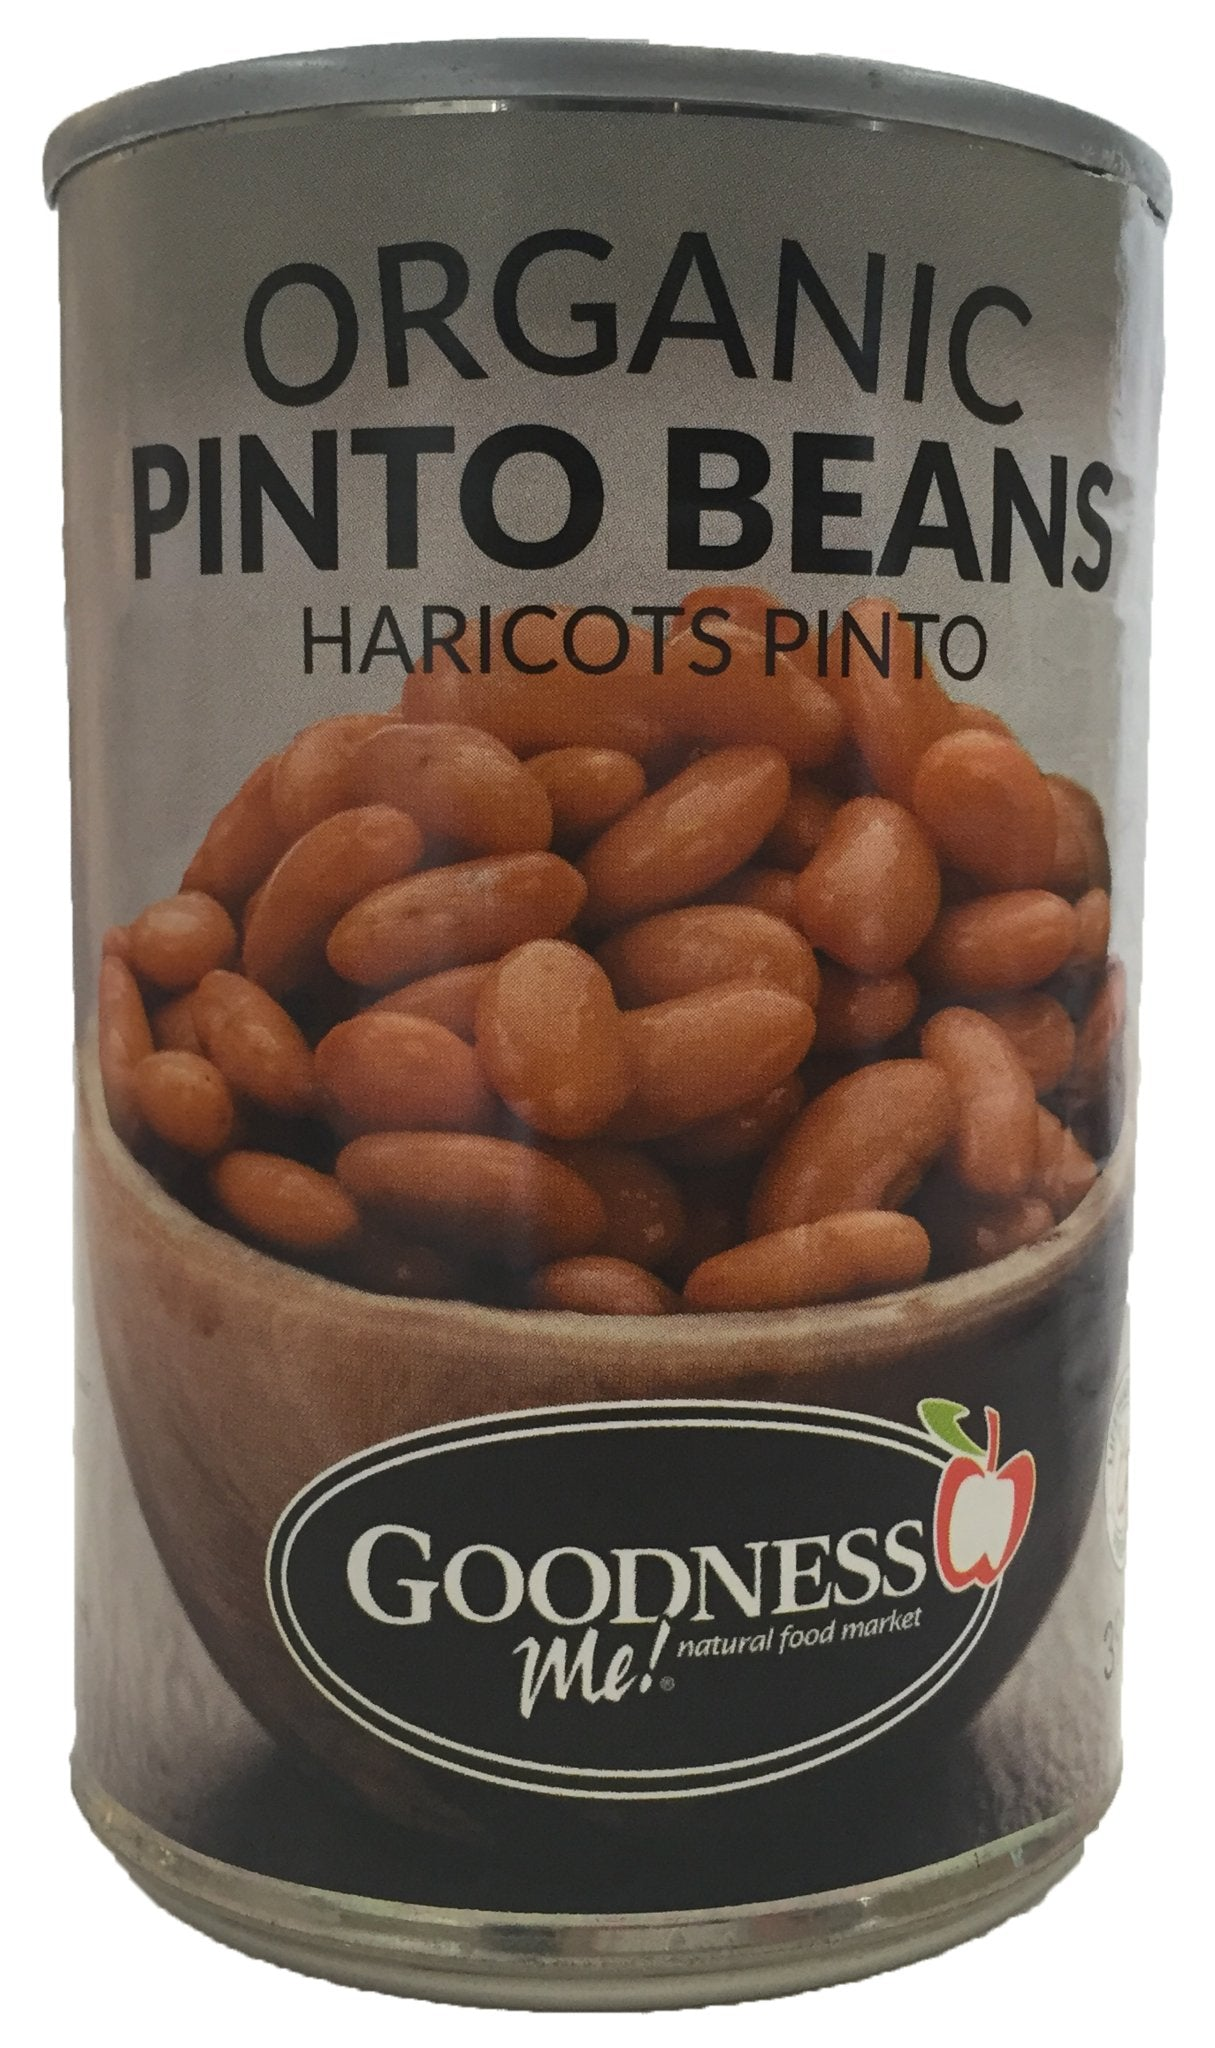 Food & Drink - Goodness Me! - Organic Pinto Beans, 398 Ml